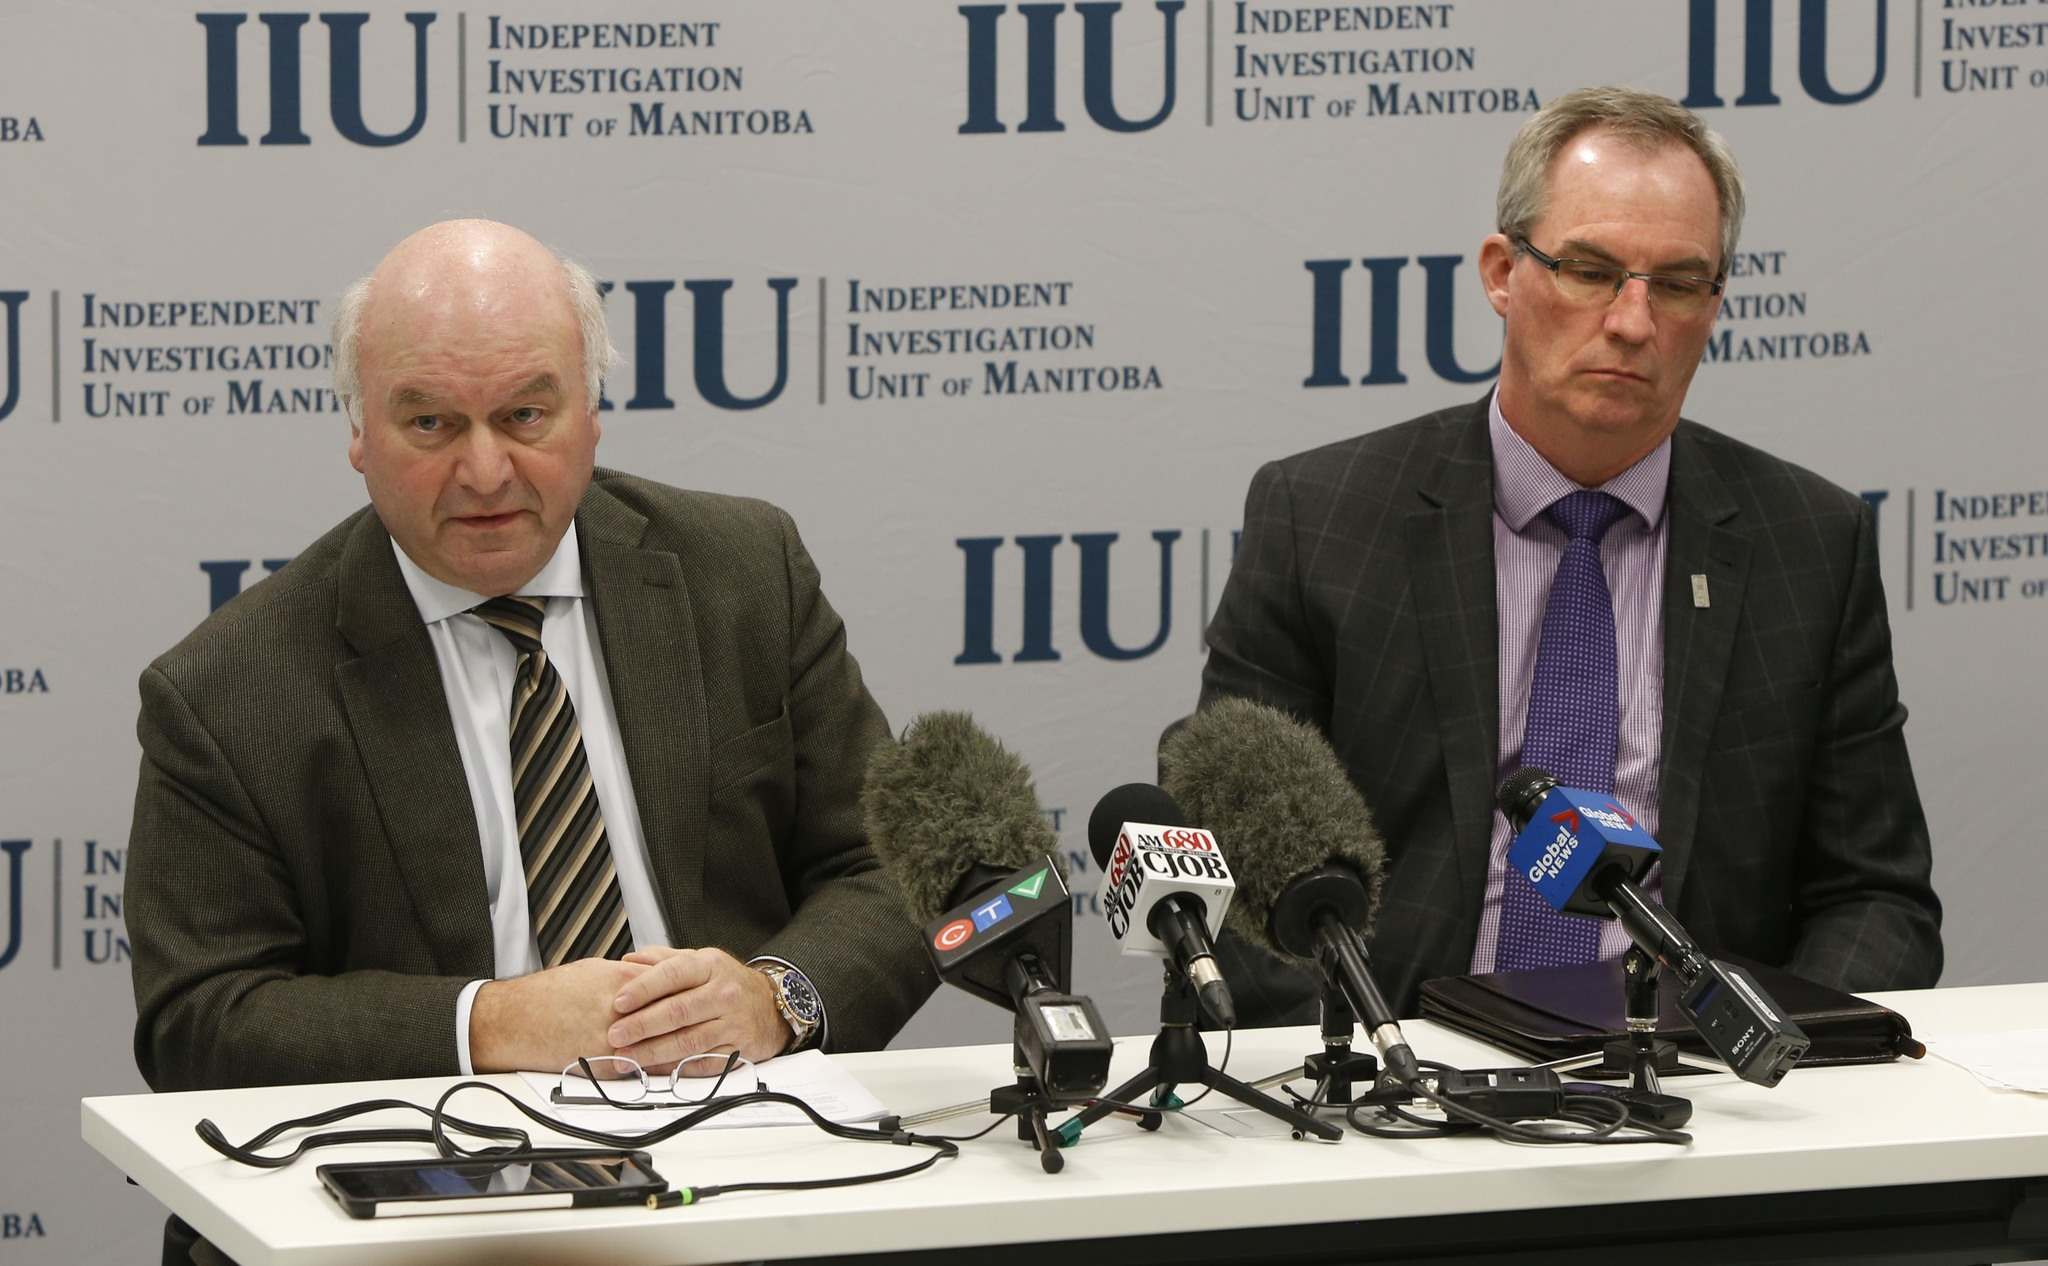 WAYNE GLOWACKI / WINNIPEG FREE PRESS</p><p>At left, Zane Tessler, civilian director of the Independent Investigation Unit of Manitoba with Ron MacDonald at a news conference Thursday regarding the officer-involved shooting that occurred on Highway 59 in September 2015, resulting in the death of a 44-year-old man.</p>